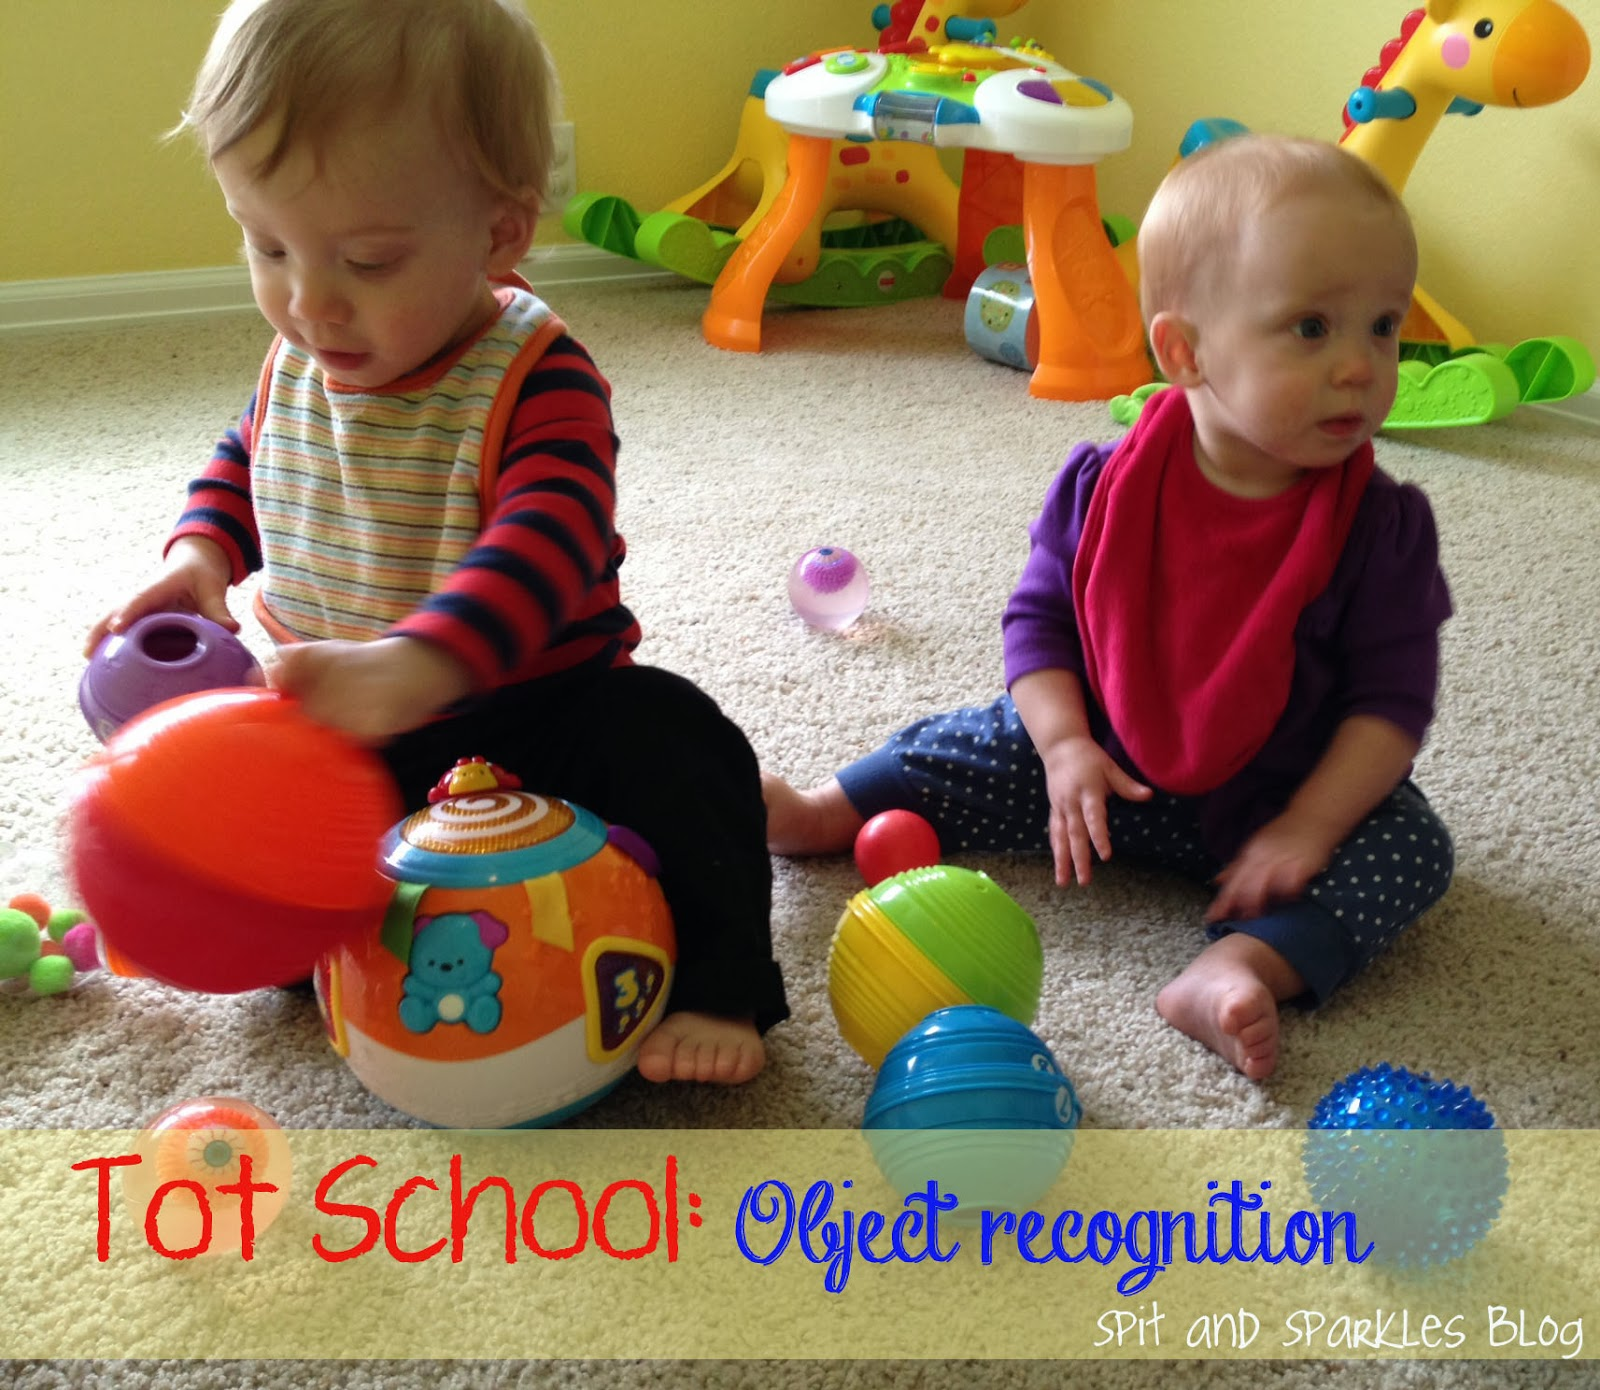 How to create an early learning and object recognition activity for babies #totschool #earlylearning #homeschool